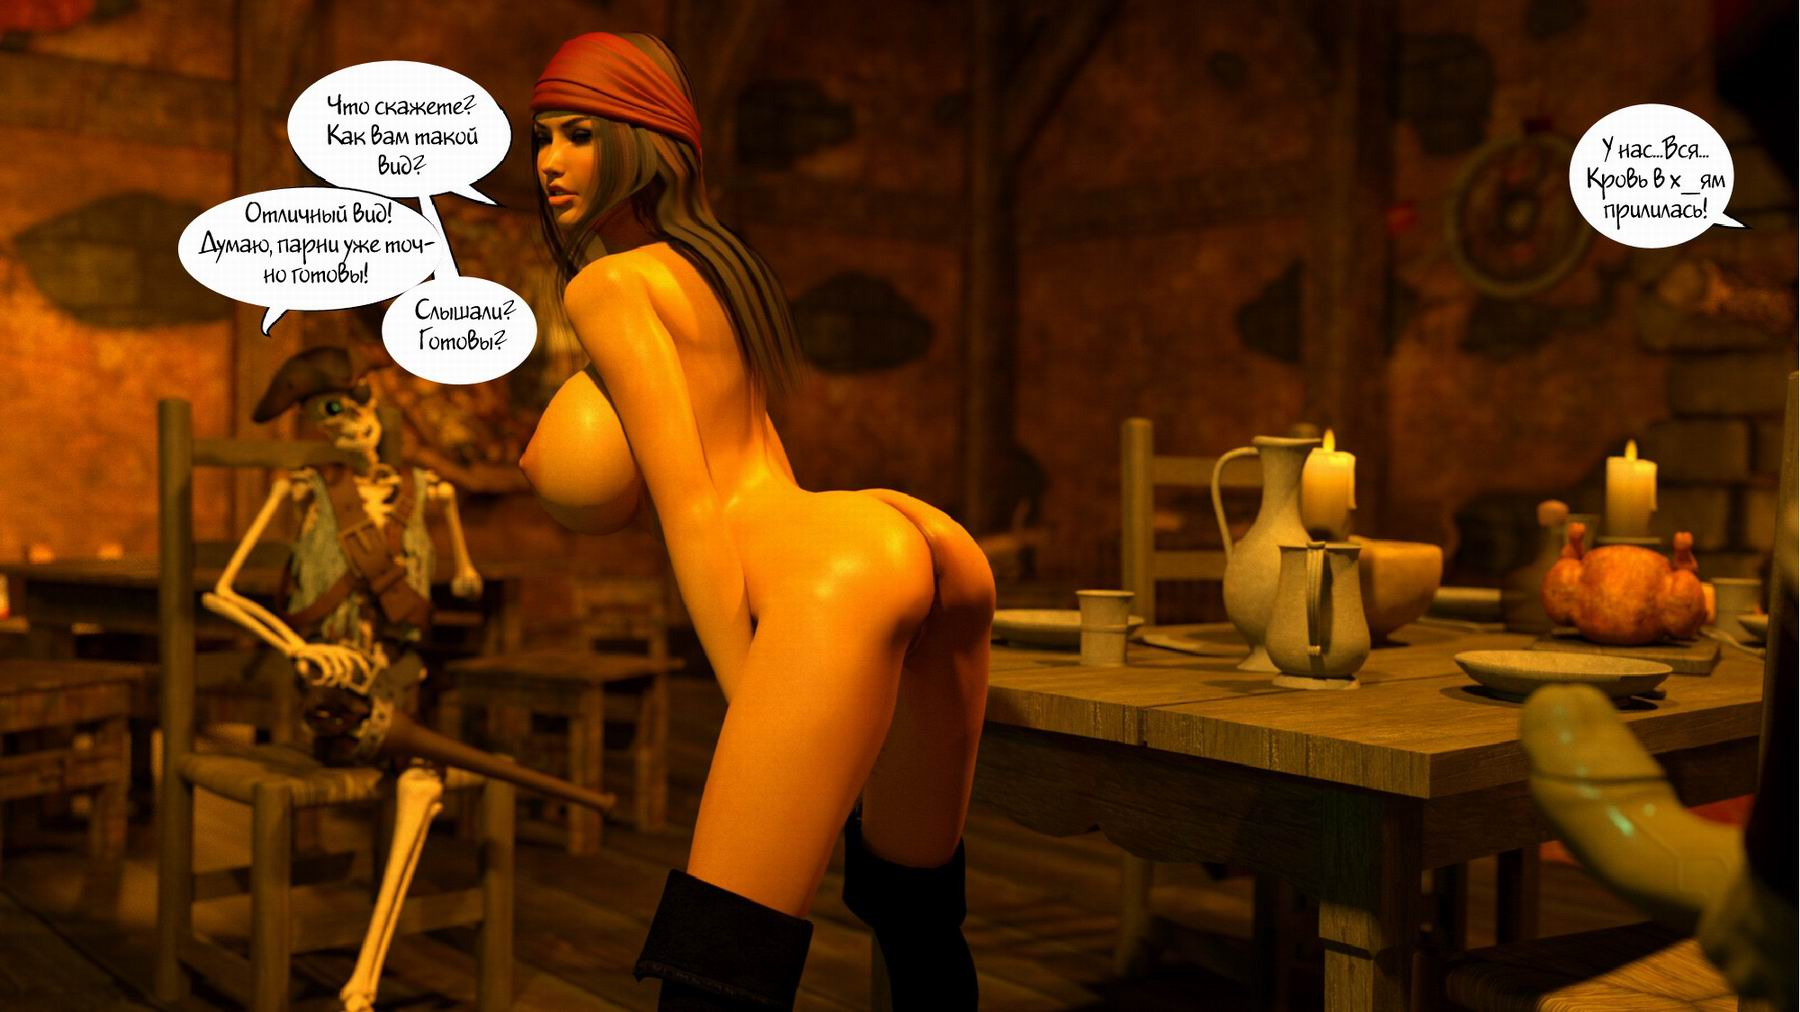 Nude pirate cartoons xxx butt